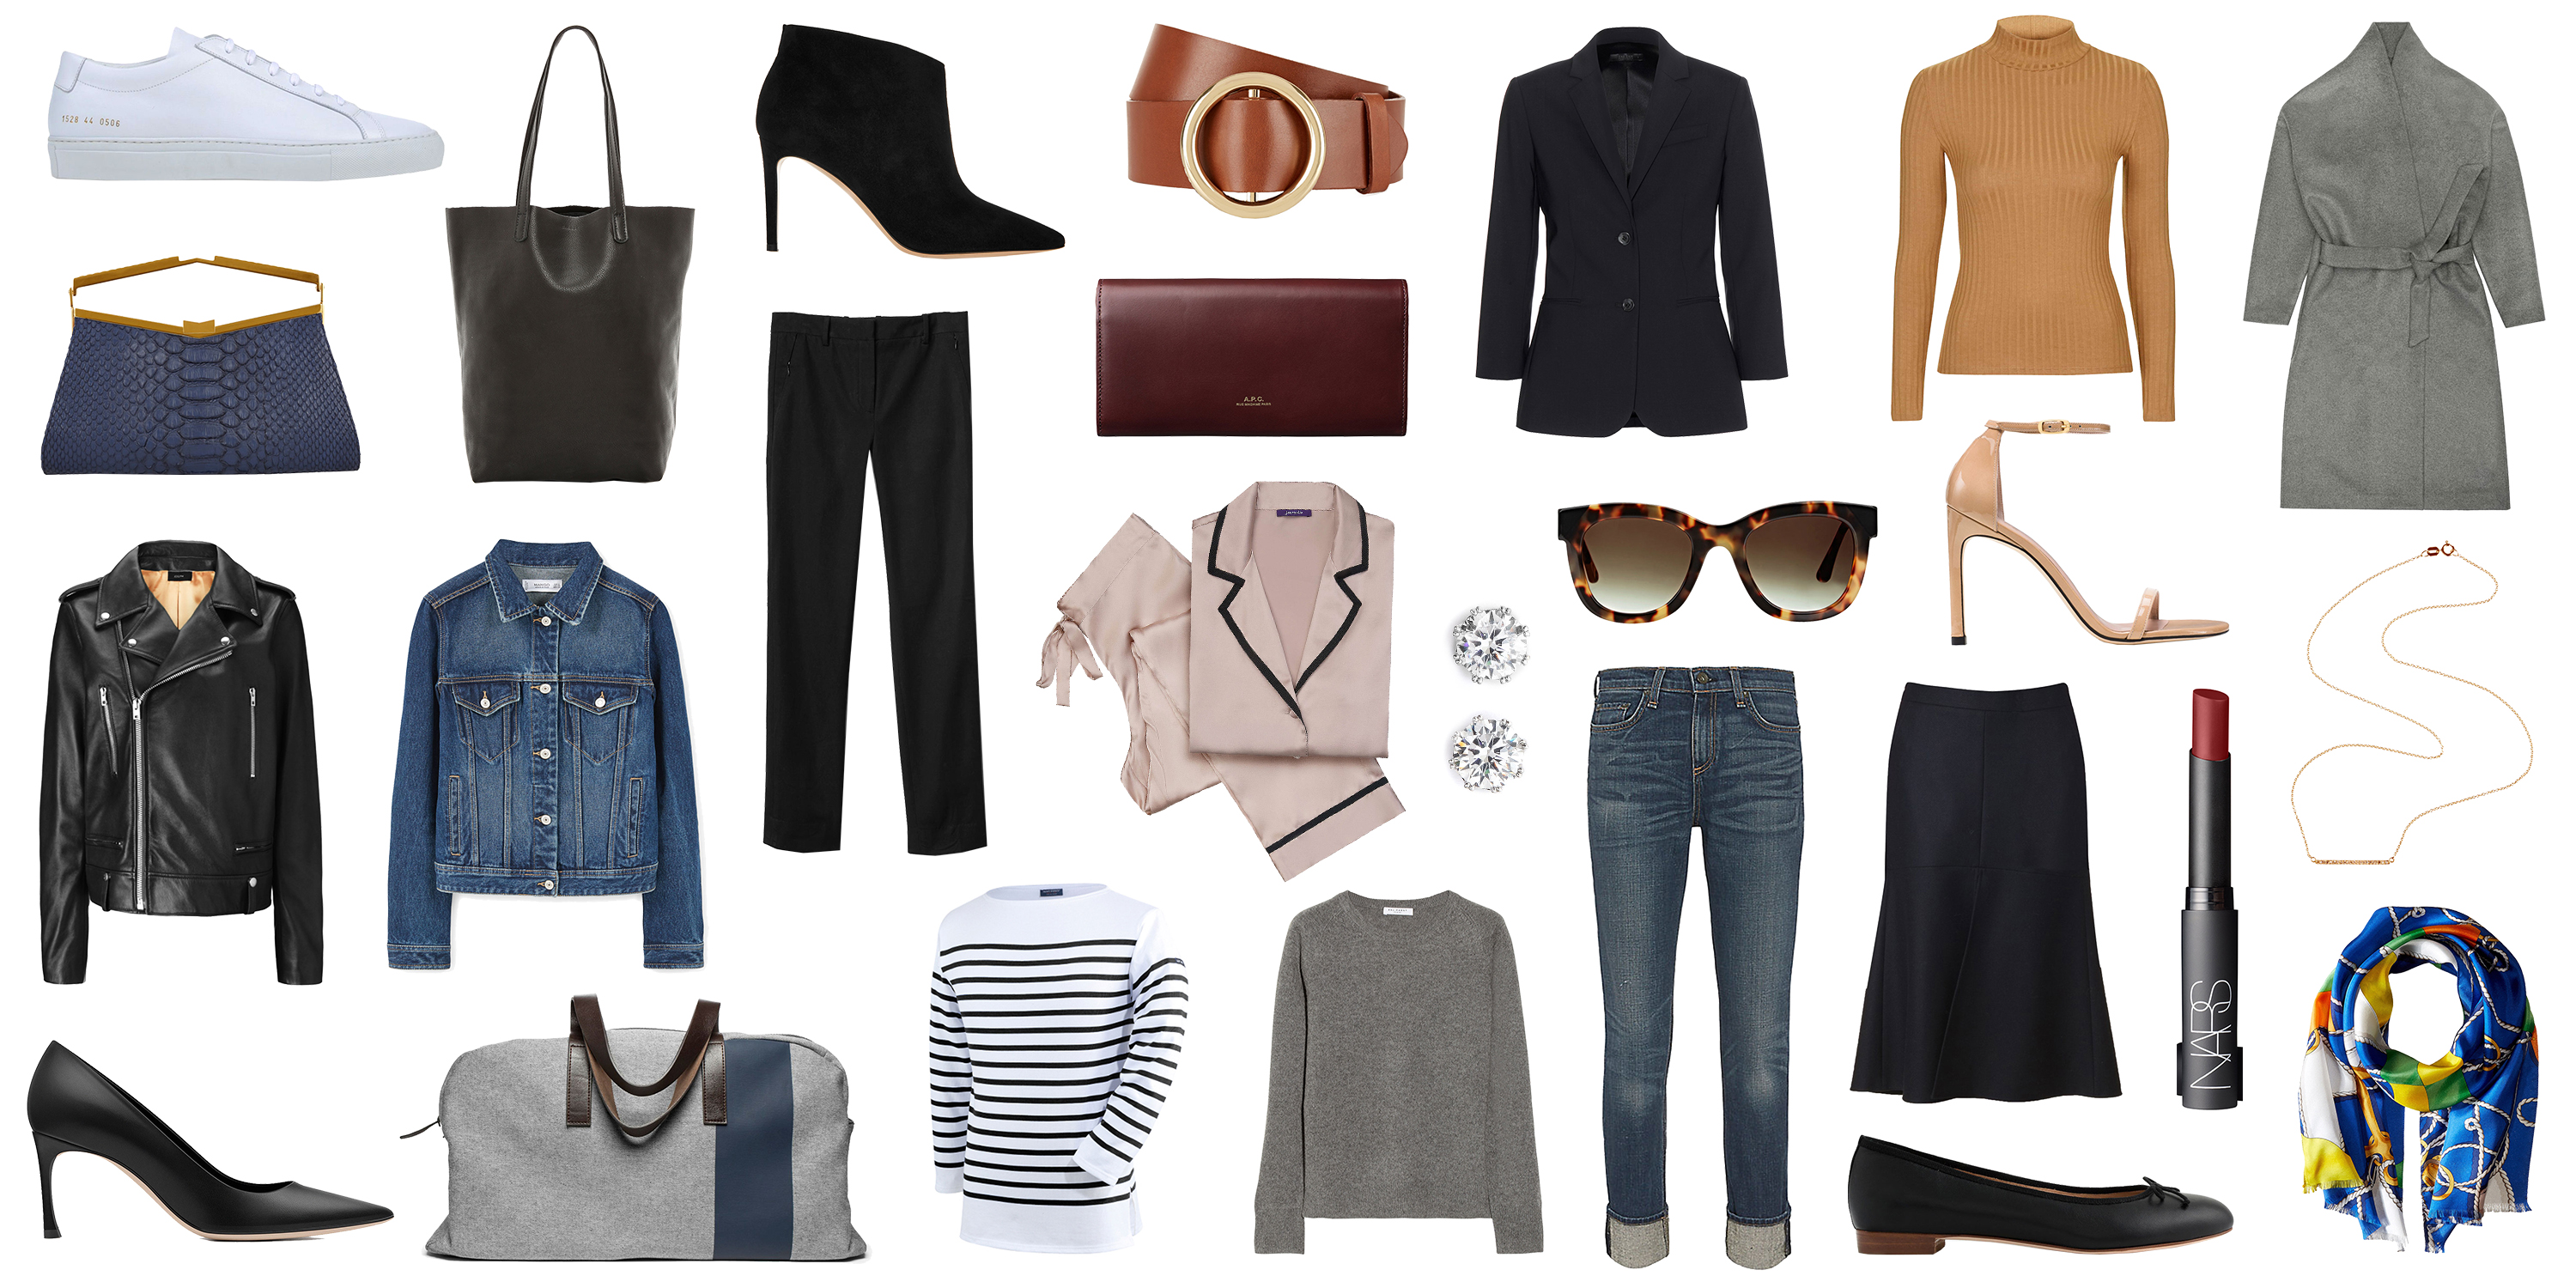 30 Fashion Staples To Have By 30 Wardrobe Essentials To